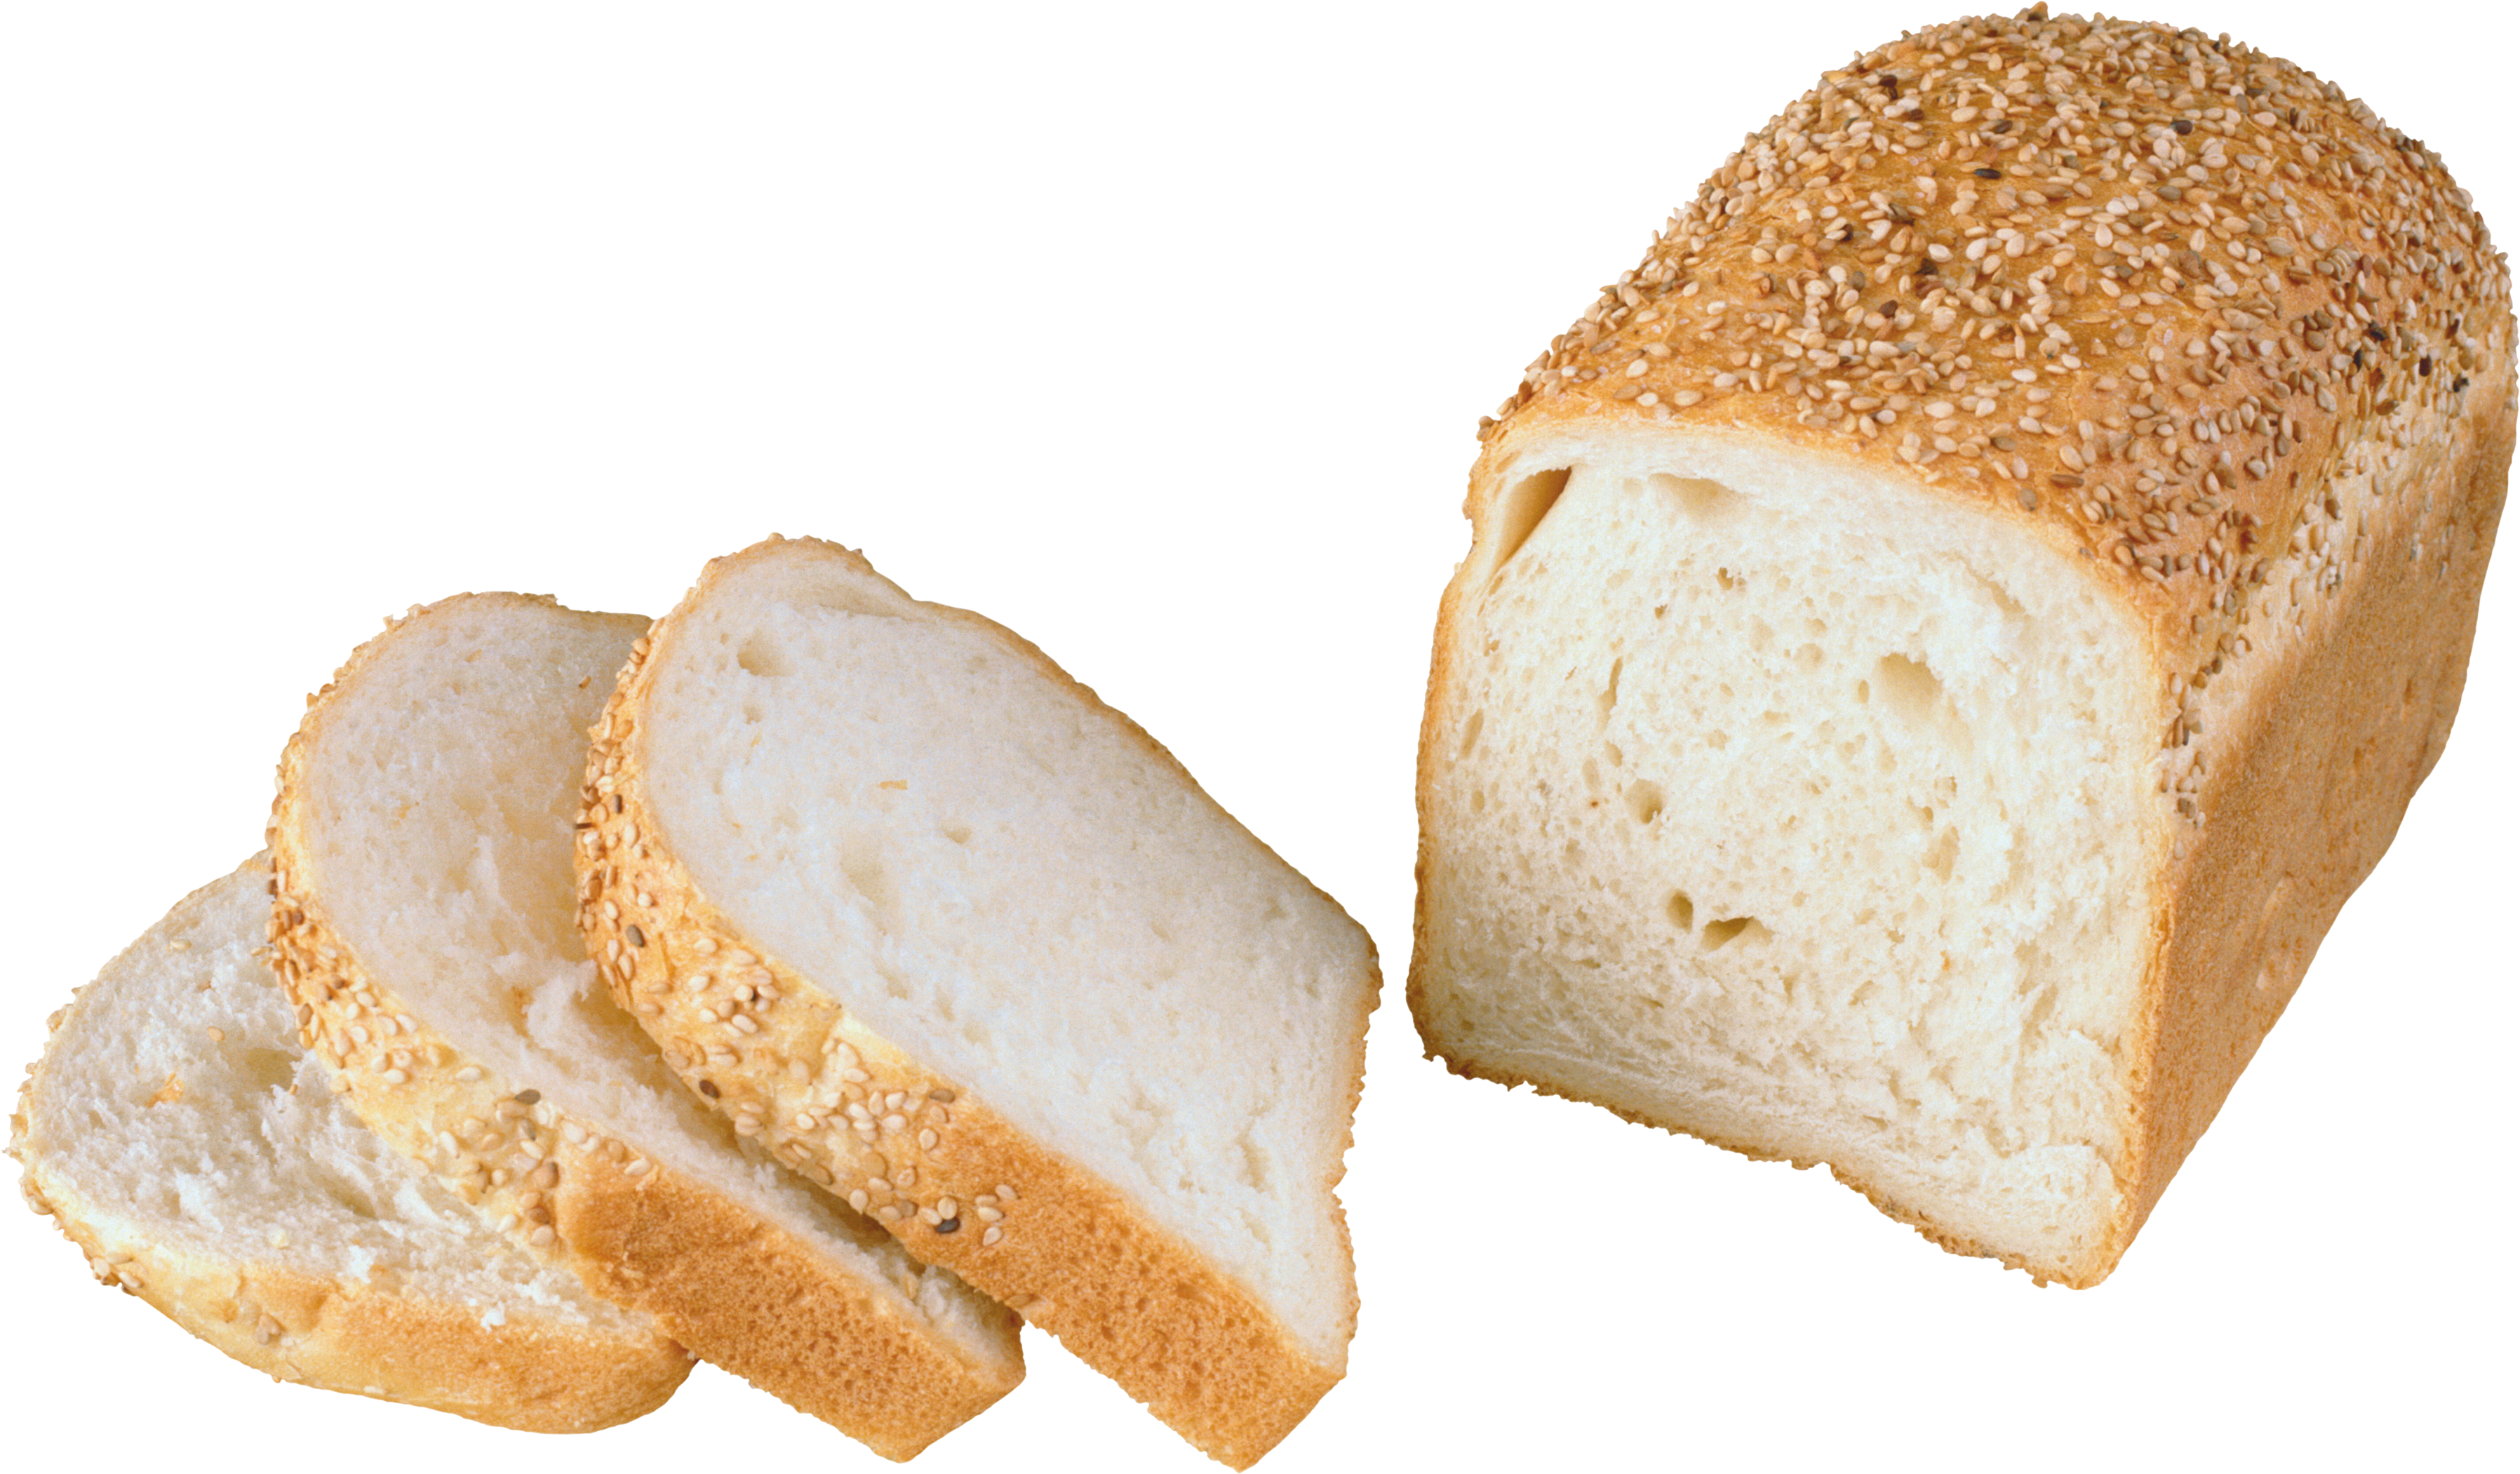 Bread PNG Image.